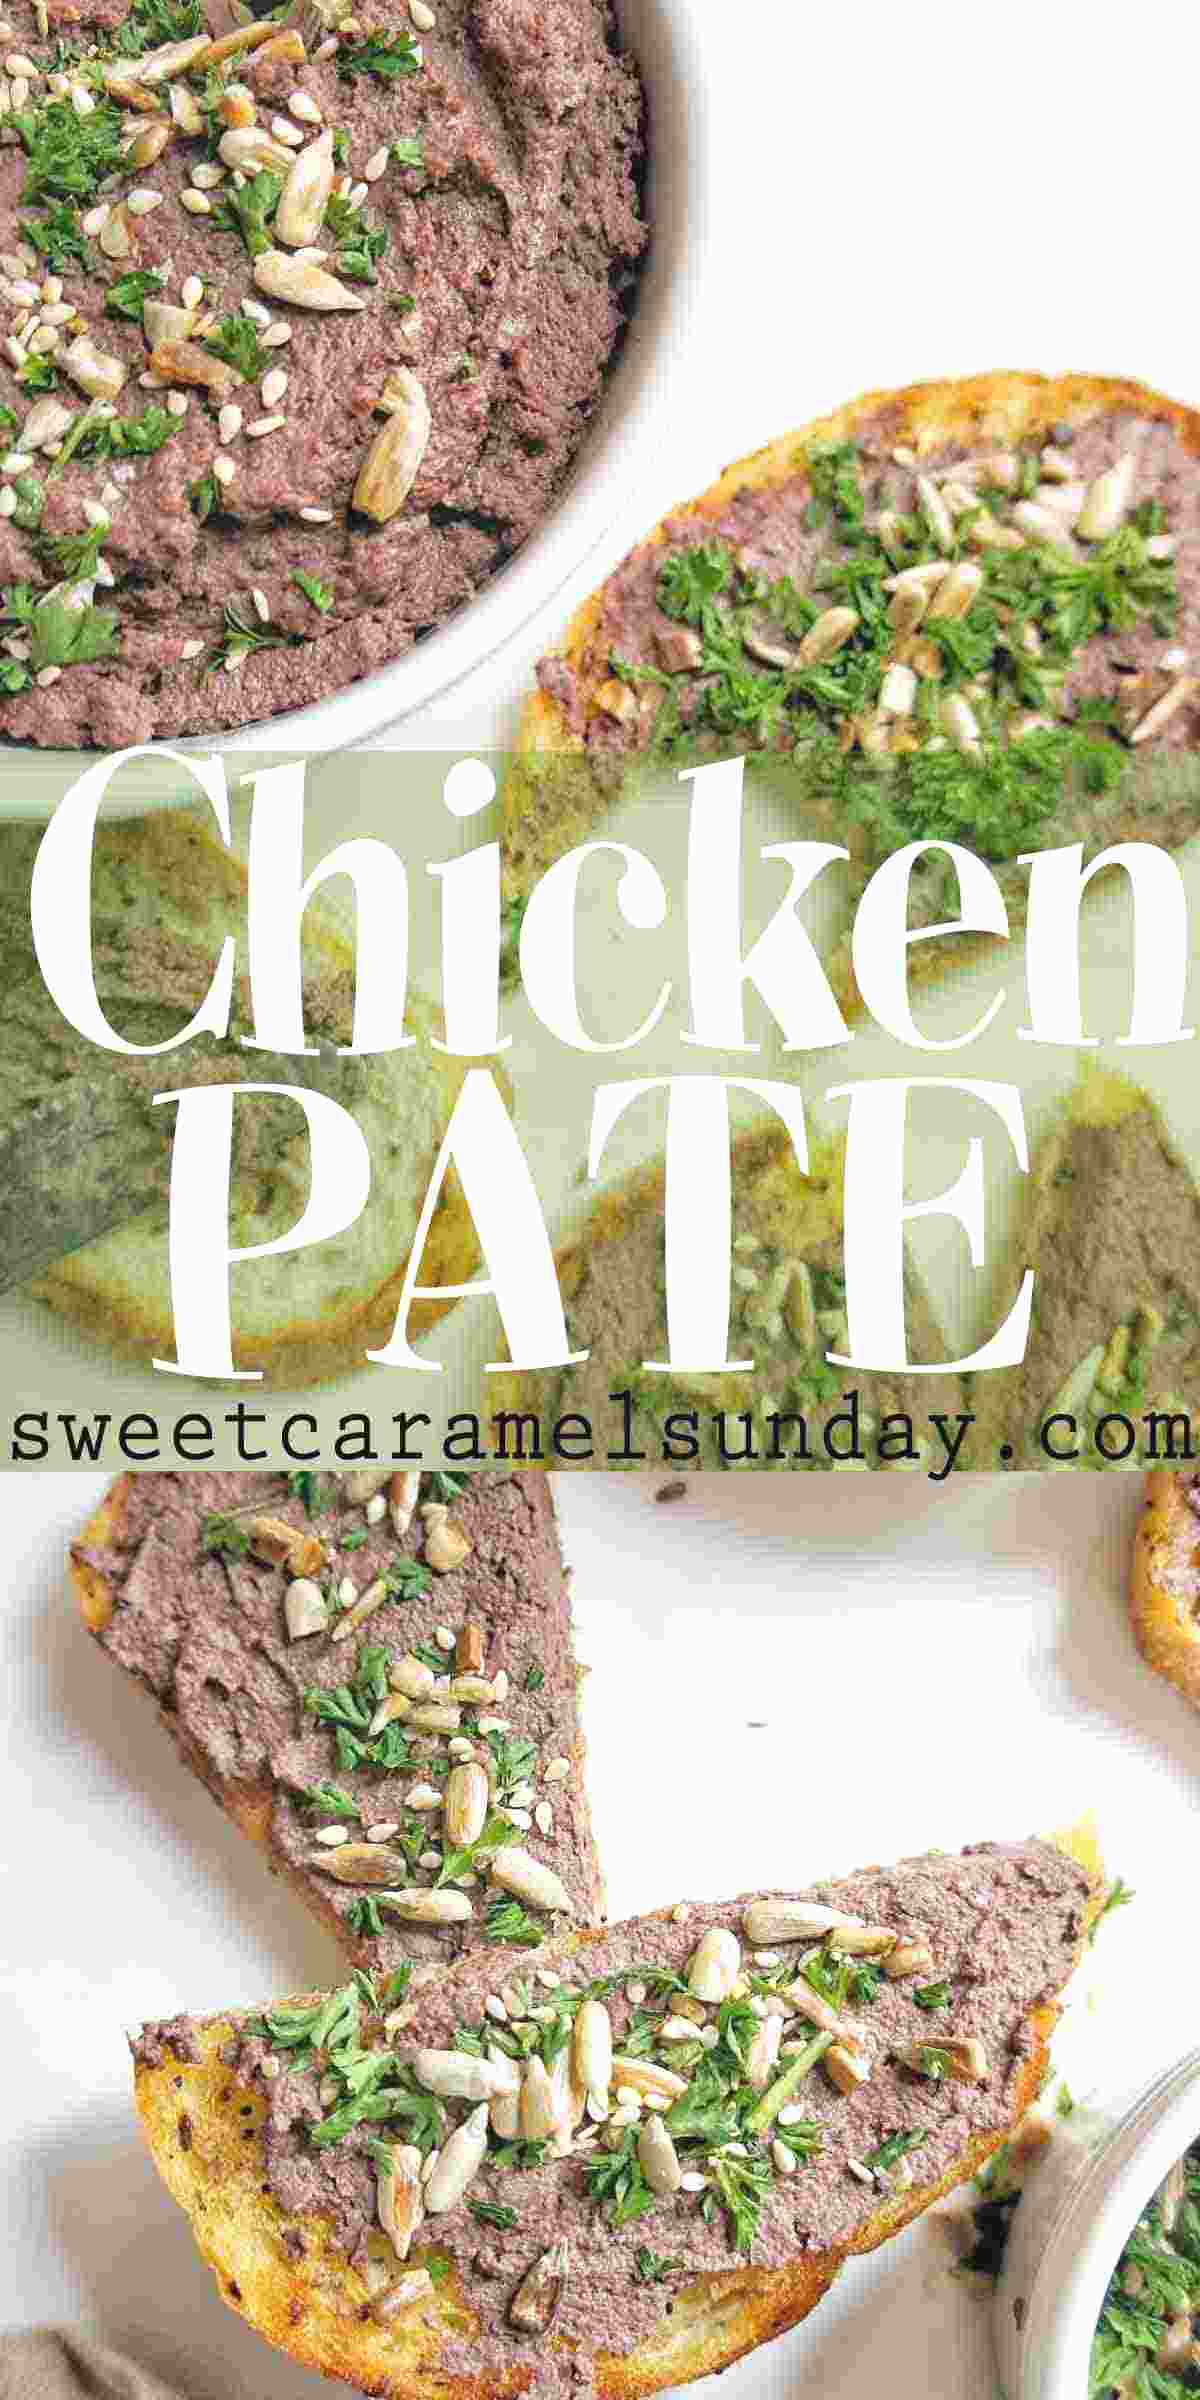 Chicken Pate spread on toast with text overlay